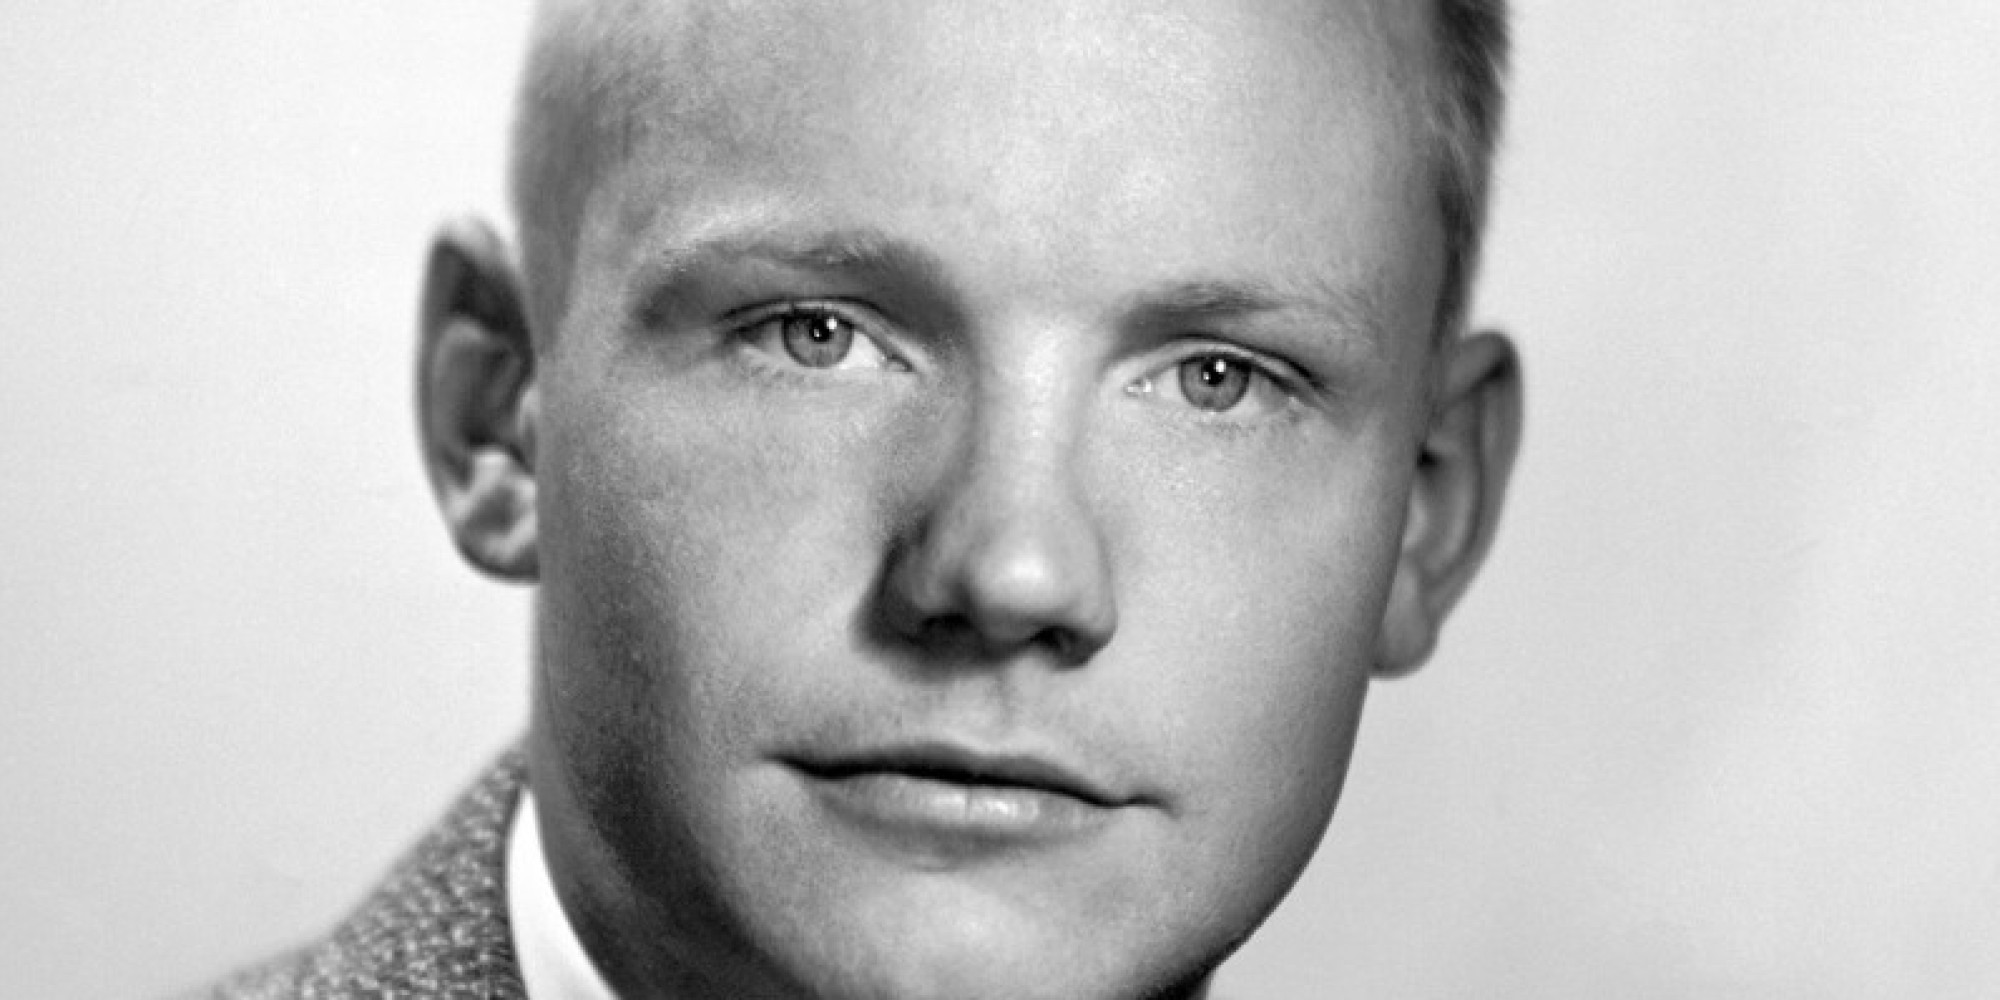 young neil armstrong - photo #21